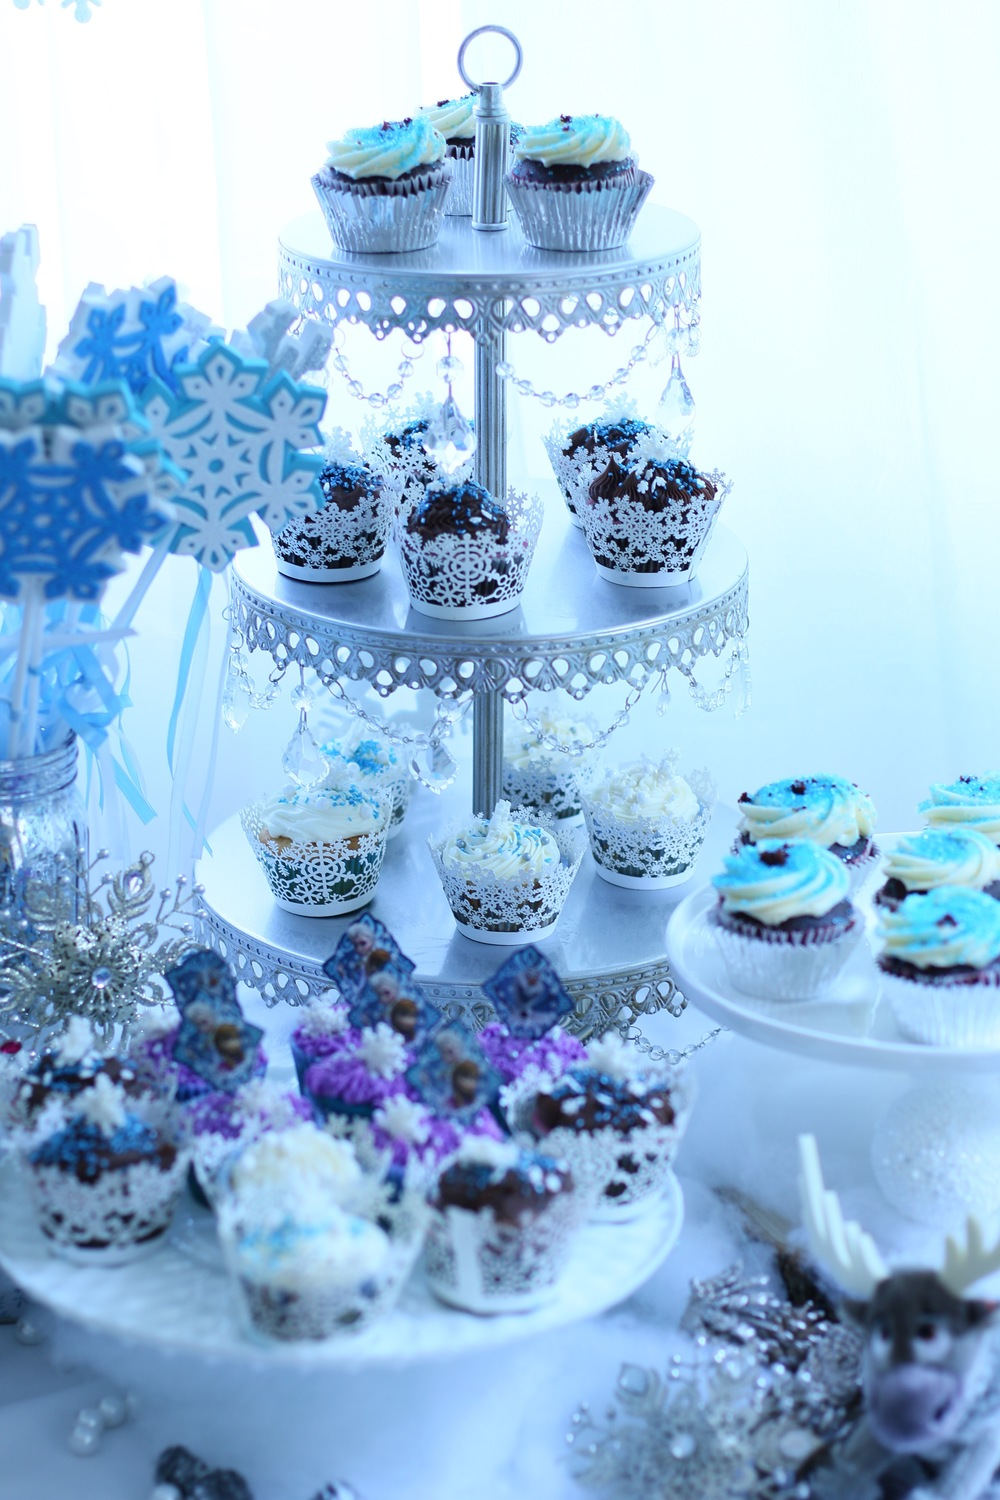 Copy of Cupcake stands - Rentals for a FROZEN party. @inJOYtheParty